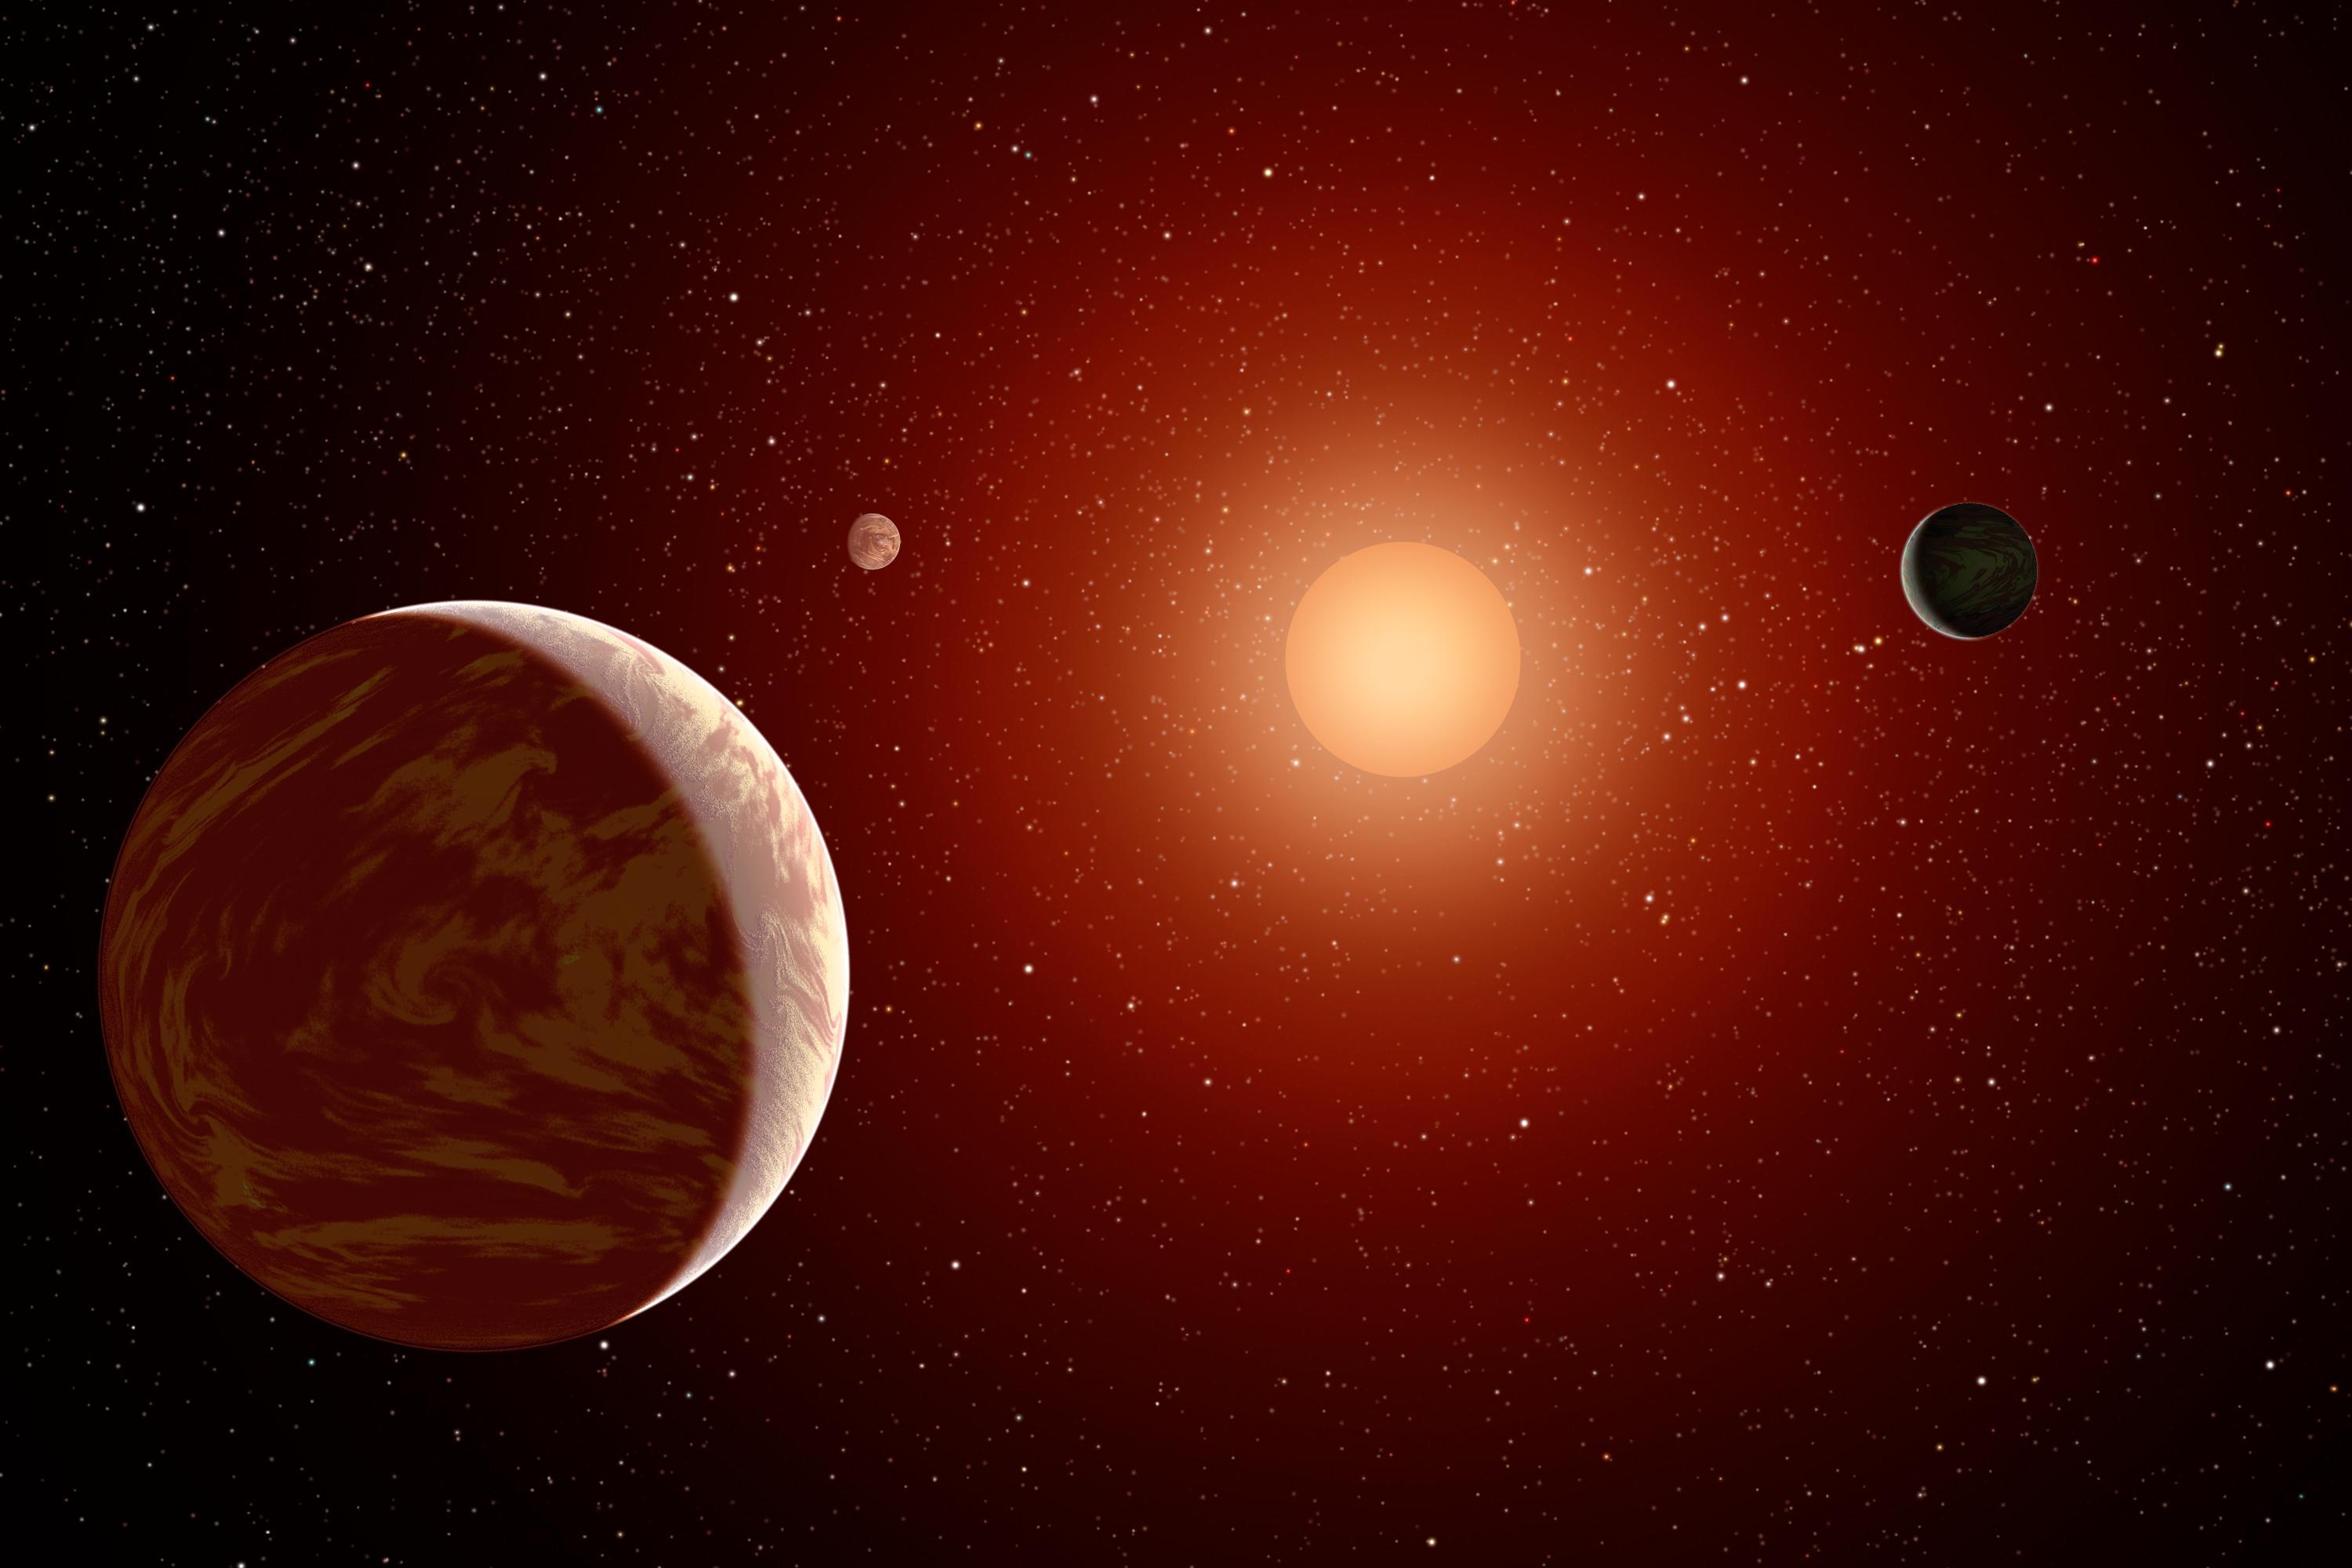 Artist's impression of a M dwarf star surrounded by planets. Image credit: NASA/JPL-Caltech/MSSS